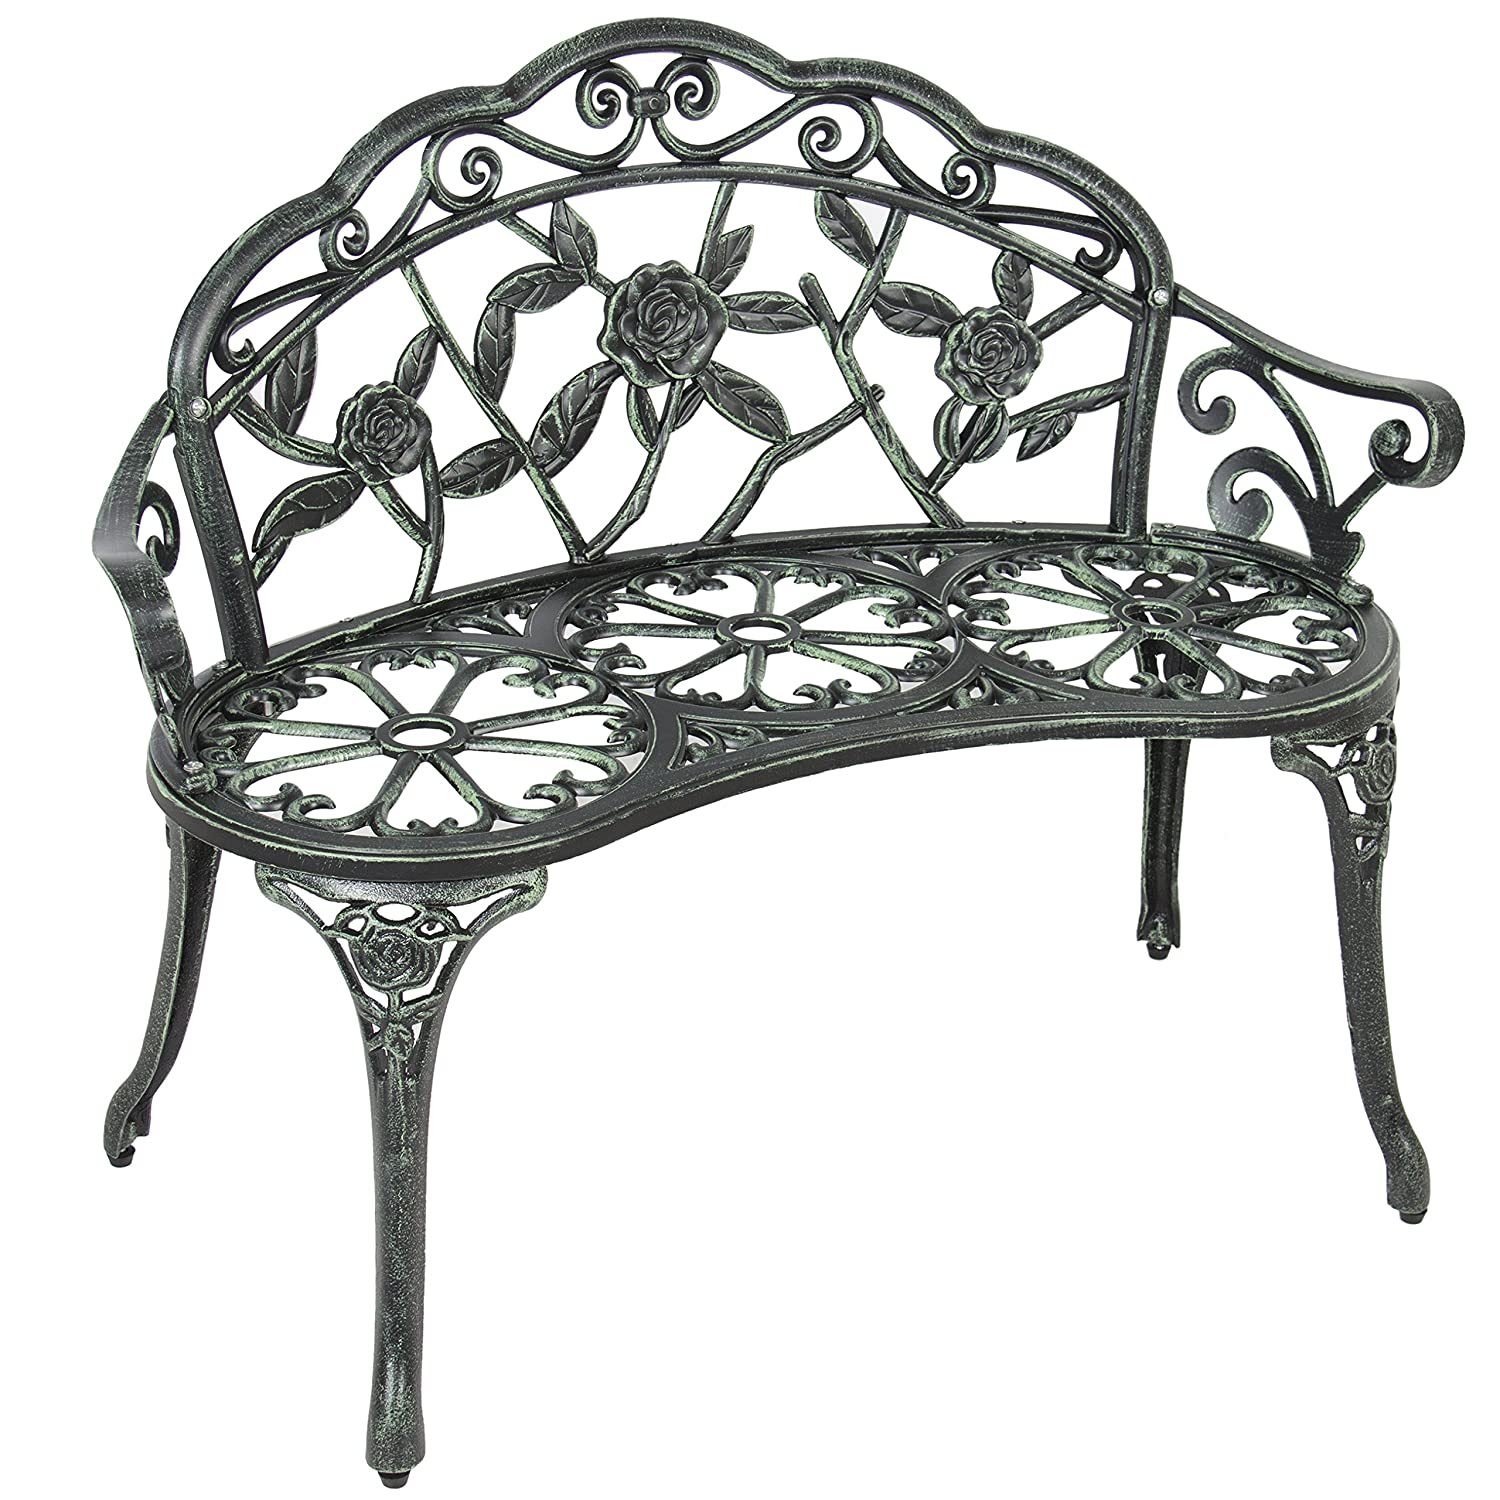 points garden bench handmade english buy roll seater benches wrought verdigris focal top iron metal img